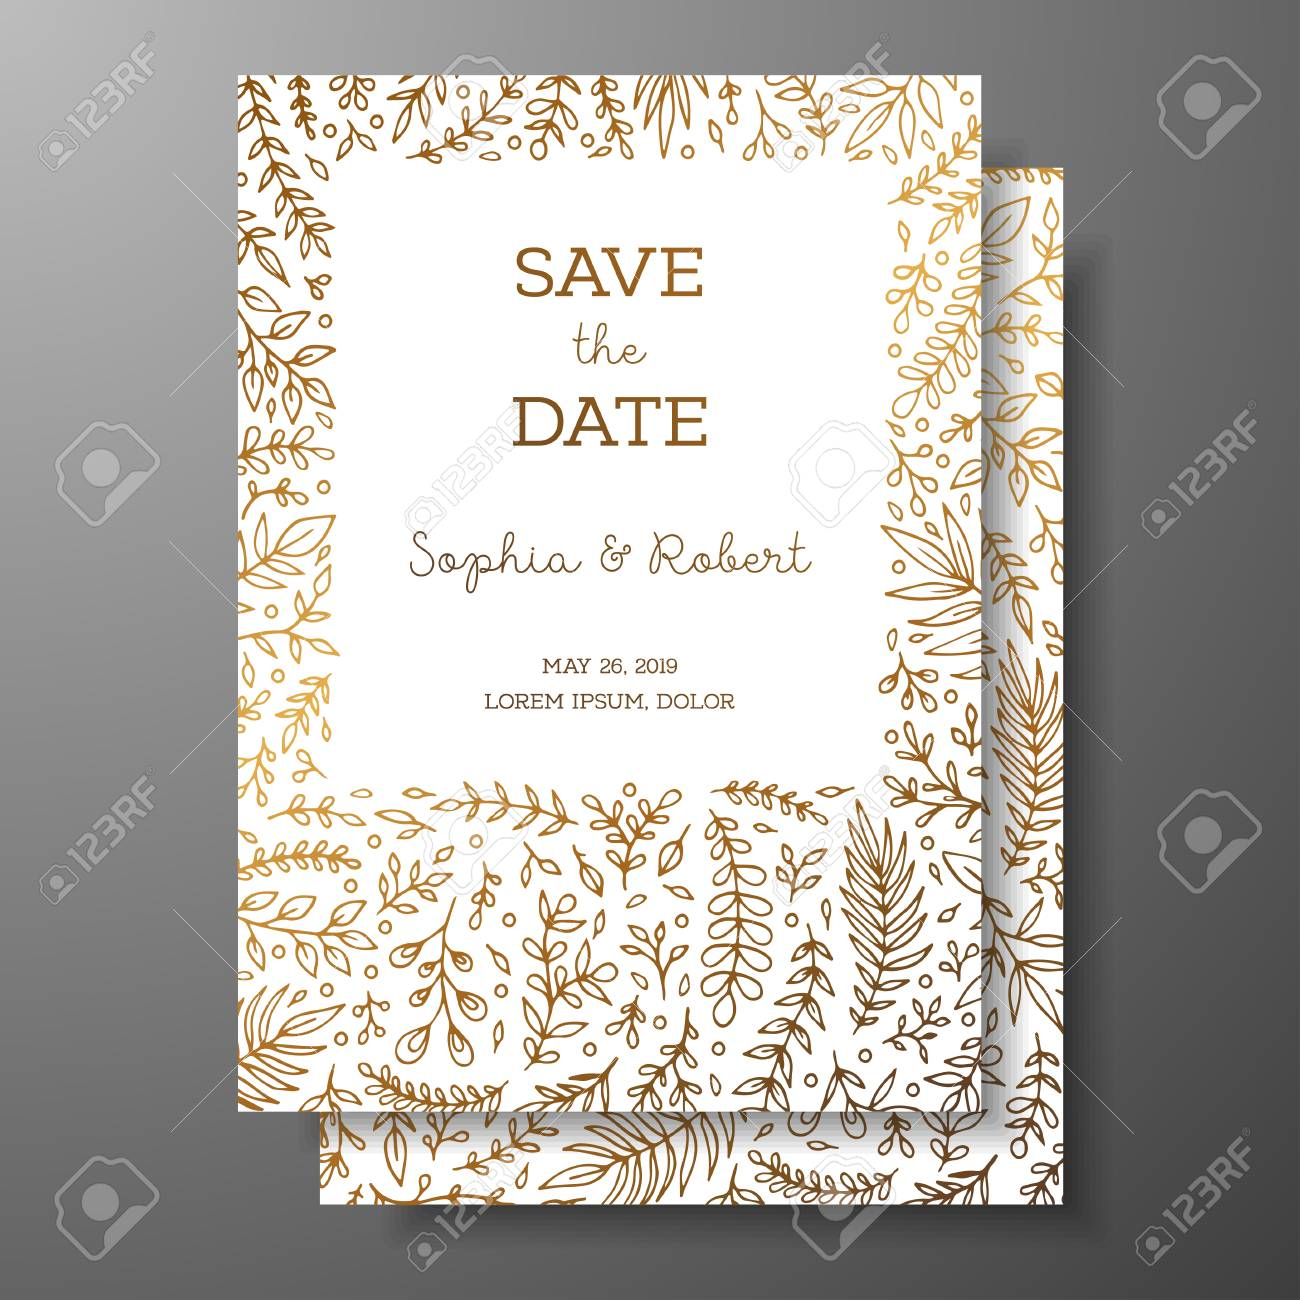 Wedding Vintage Invitation Save The Date Card With Golden Twigs